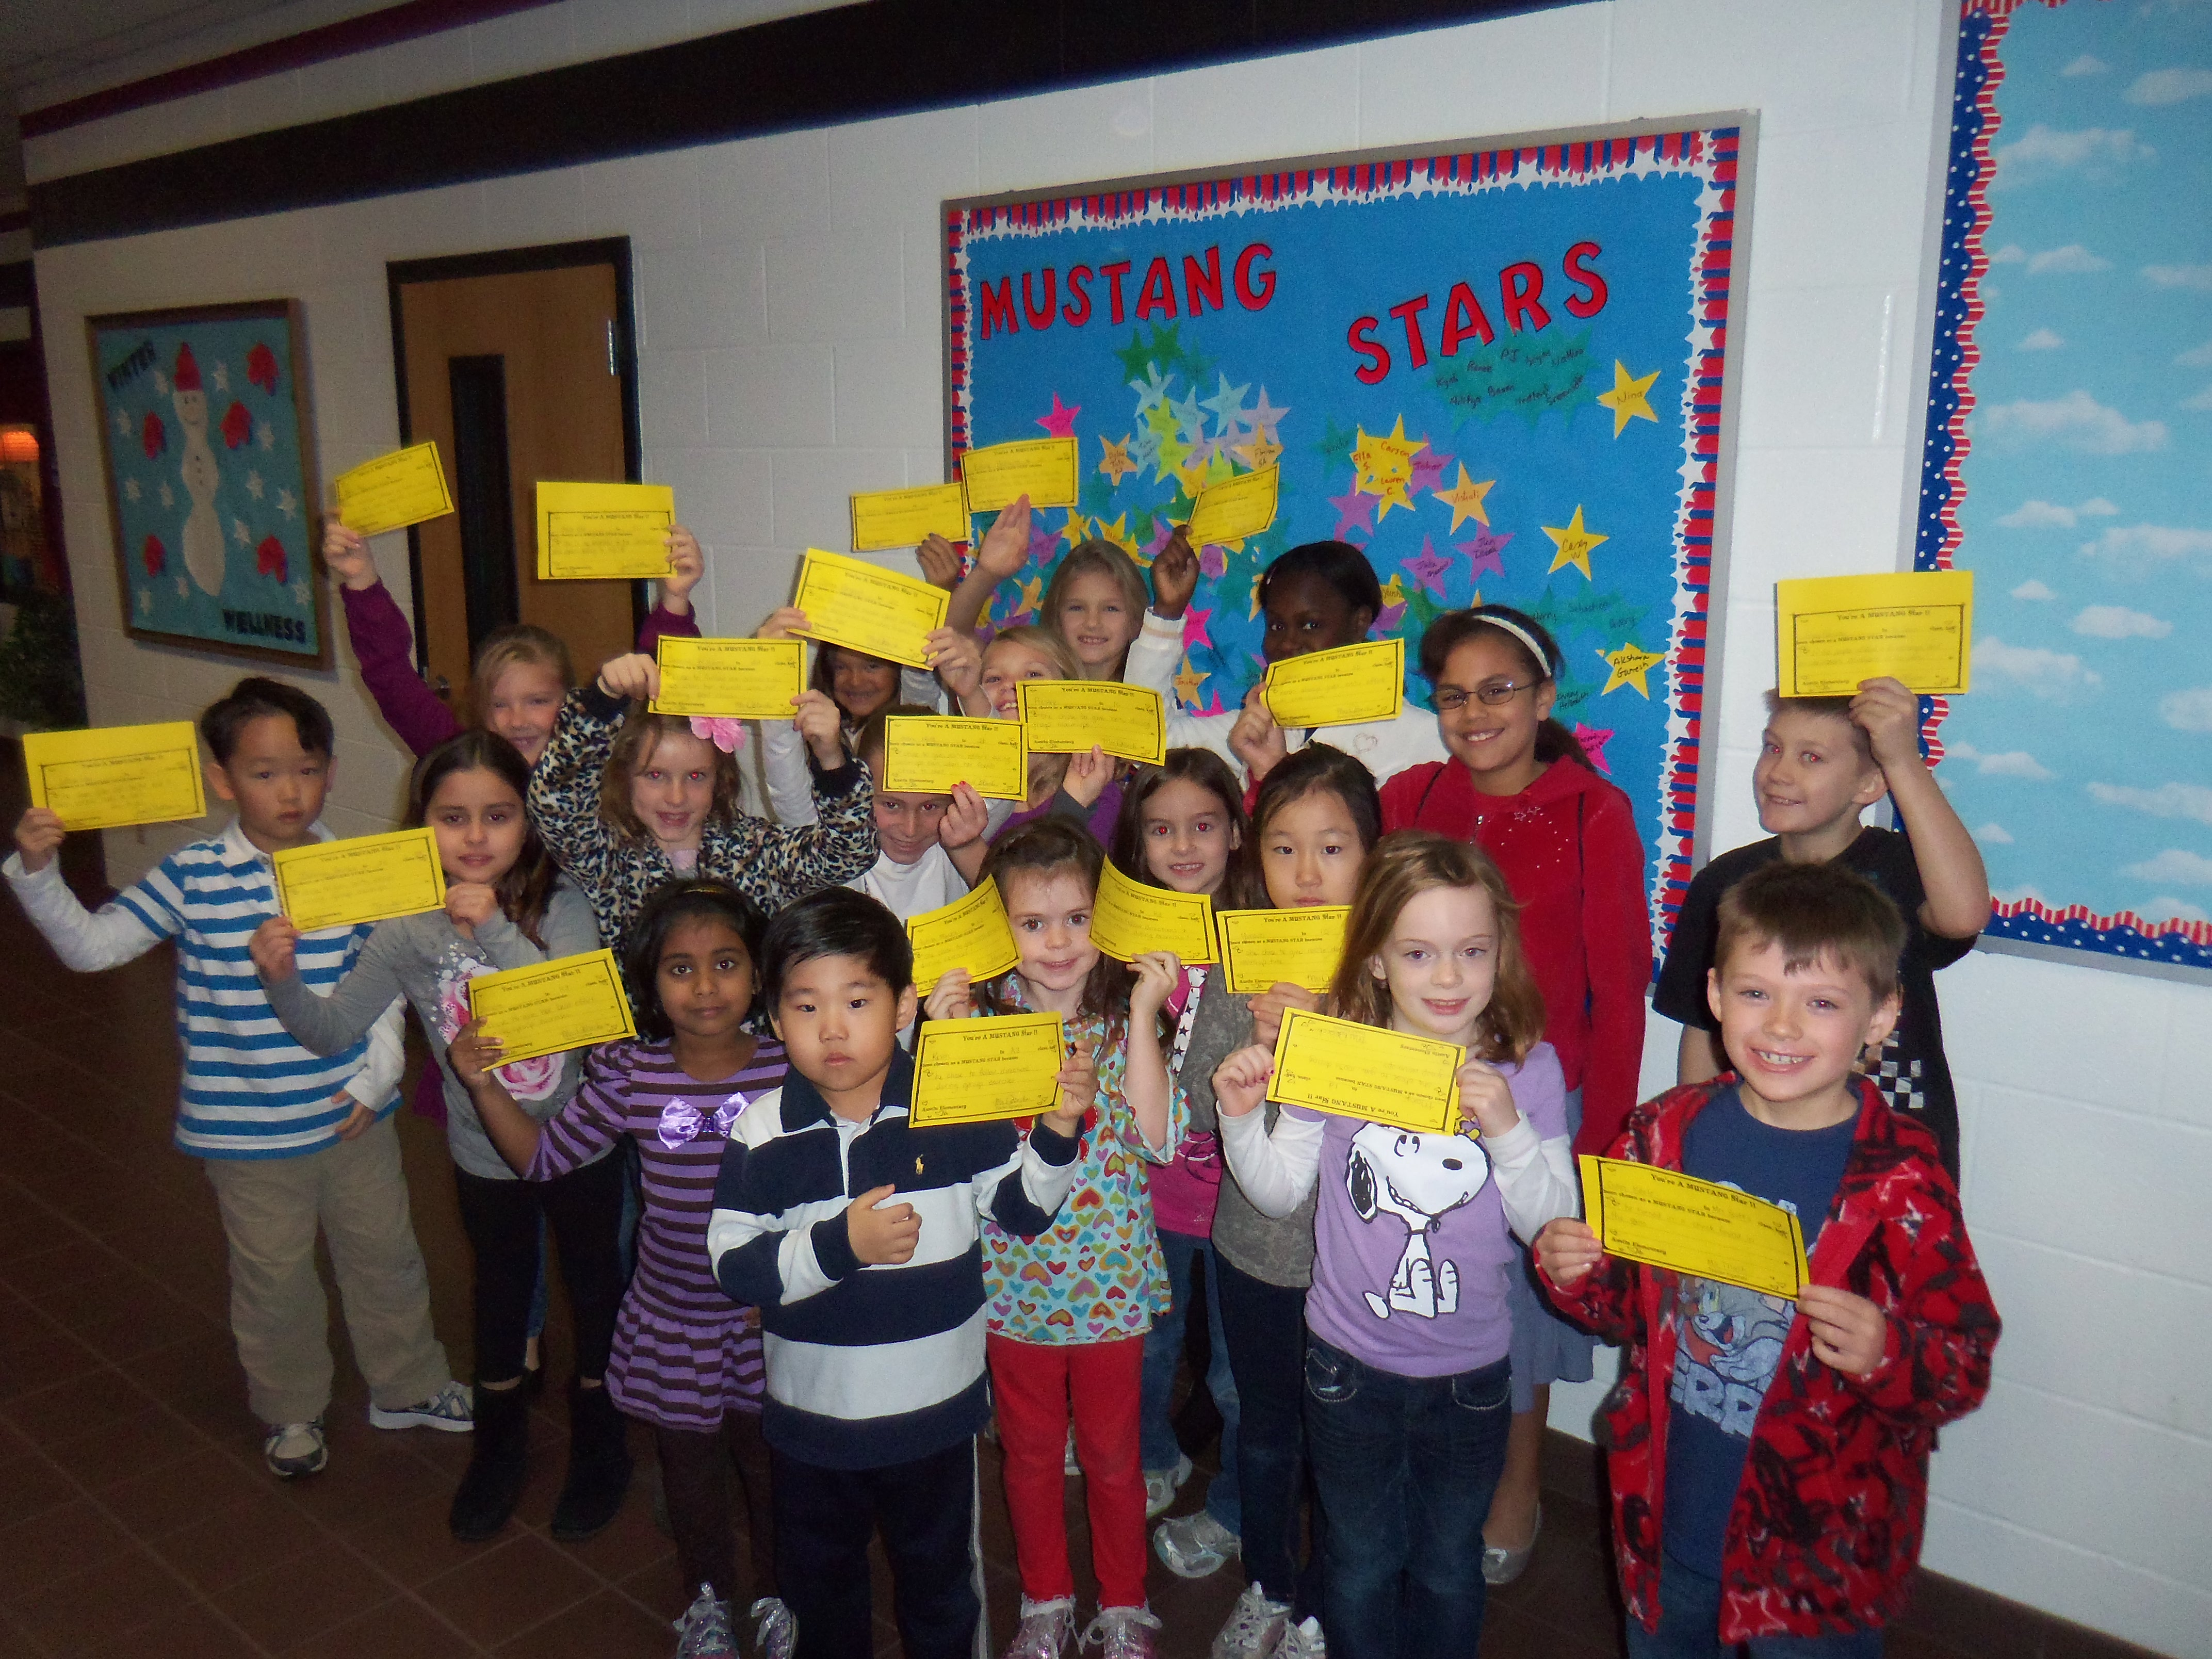 Photo: 'Mustang Stars' at Austin Elementary School - Coppell Features -  McKinney, TX